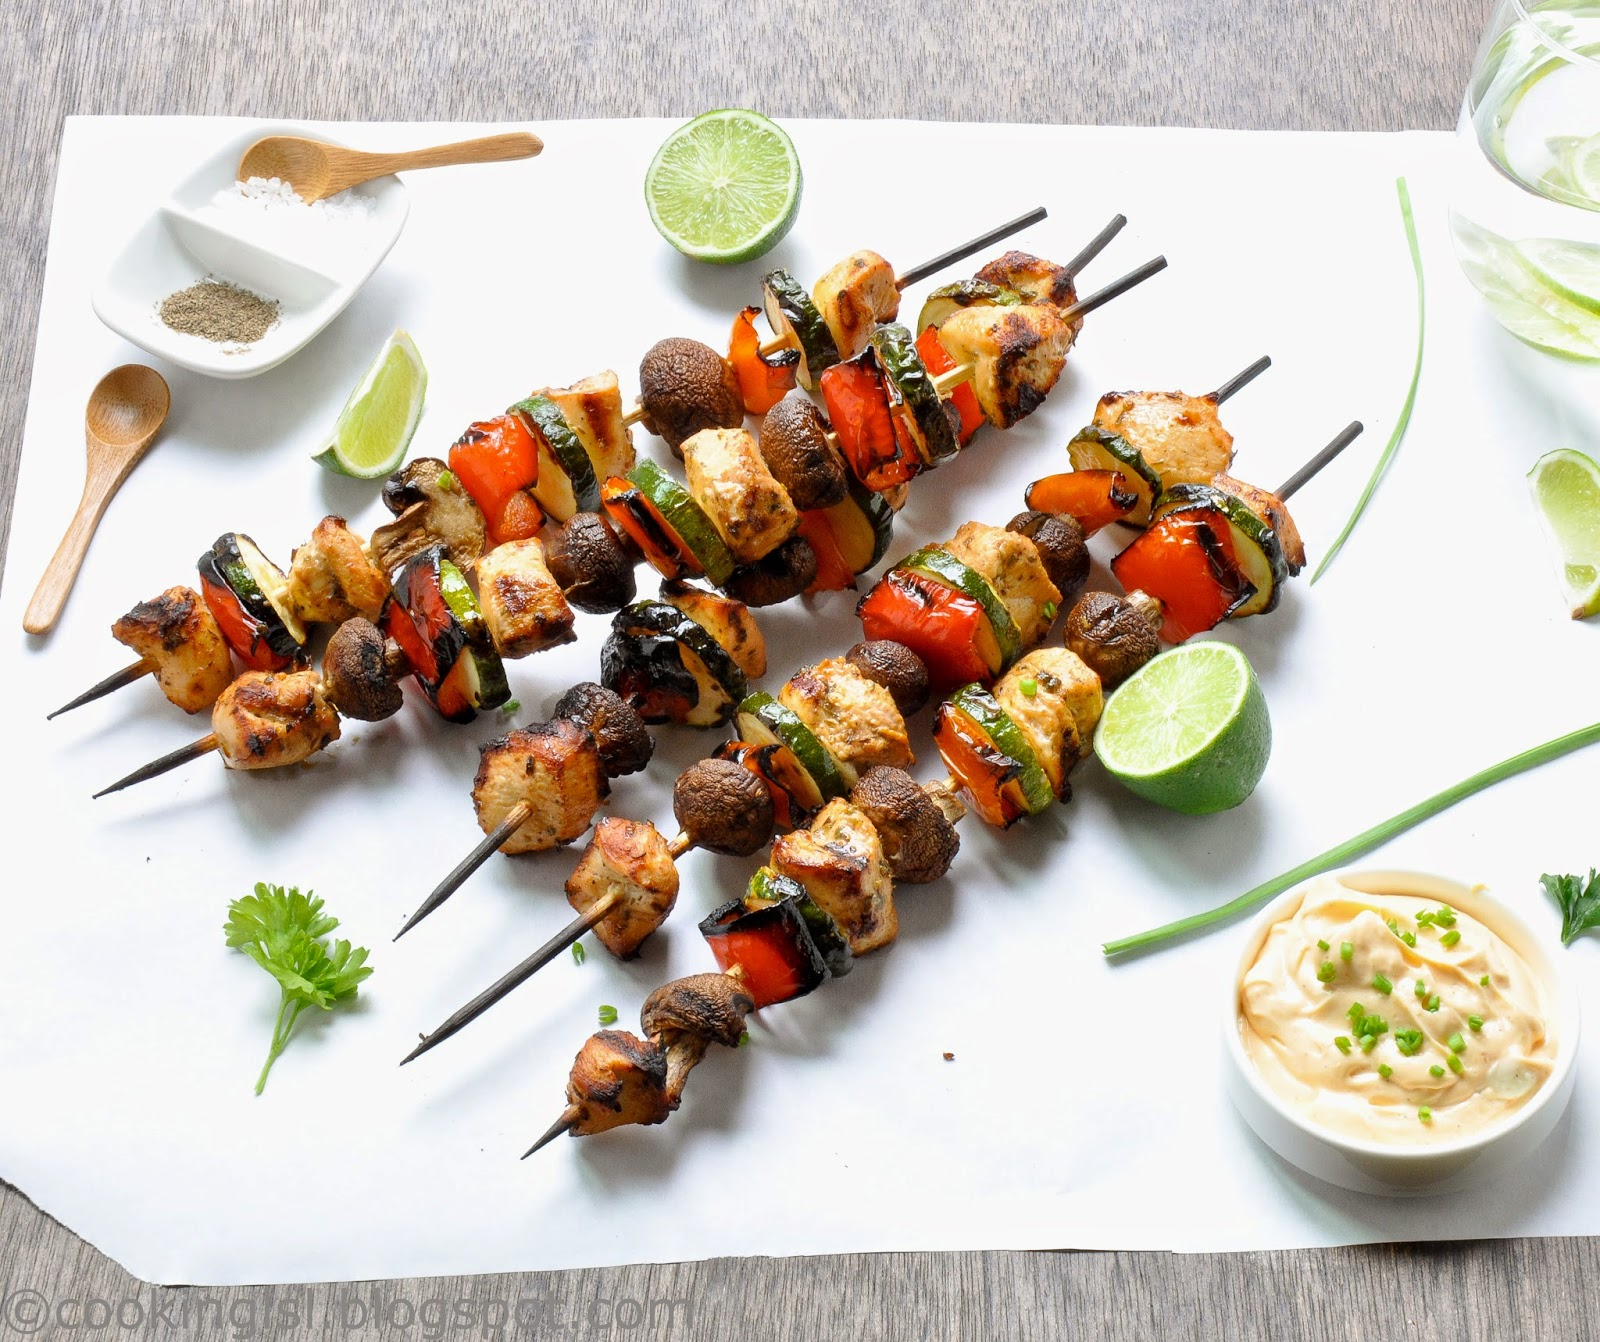 Chicken-zucchini-mushrooms-and-peppers-kabobs-kebabs-skewers-greek-marinated-bulgarian